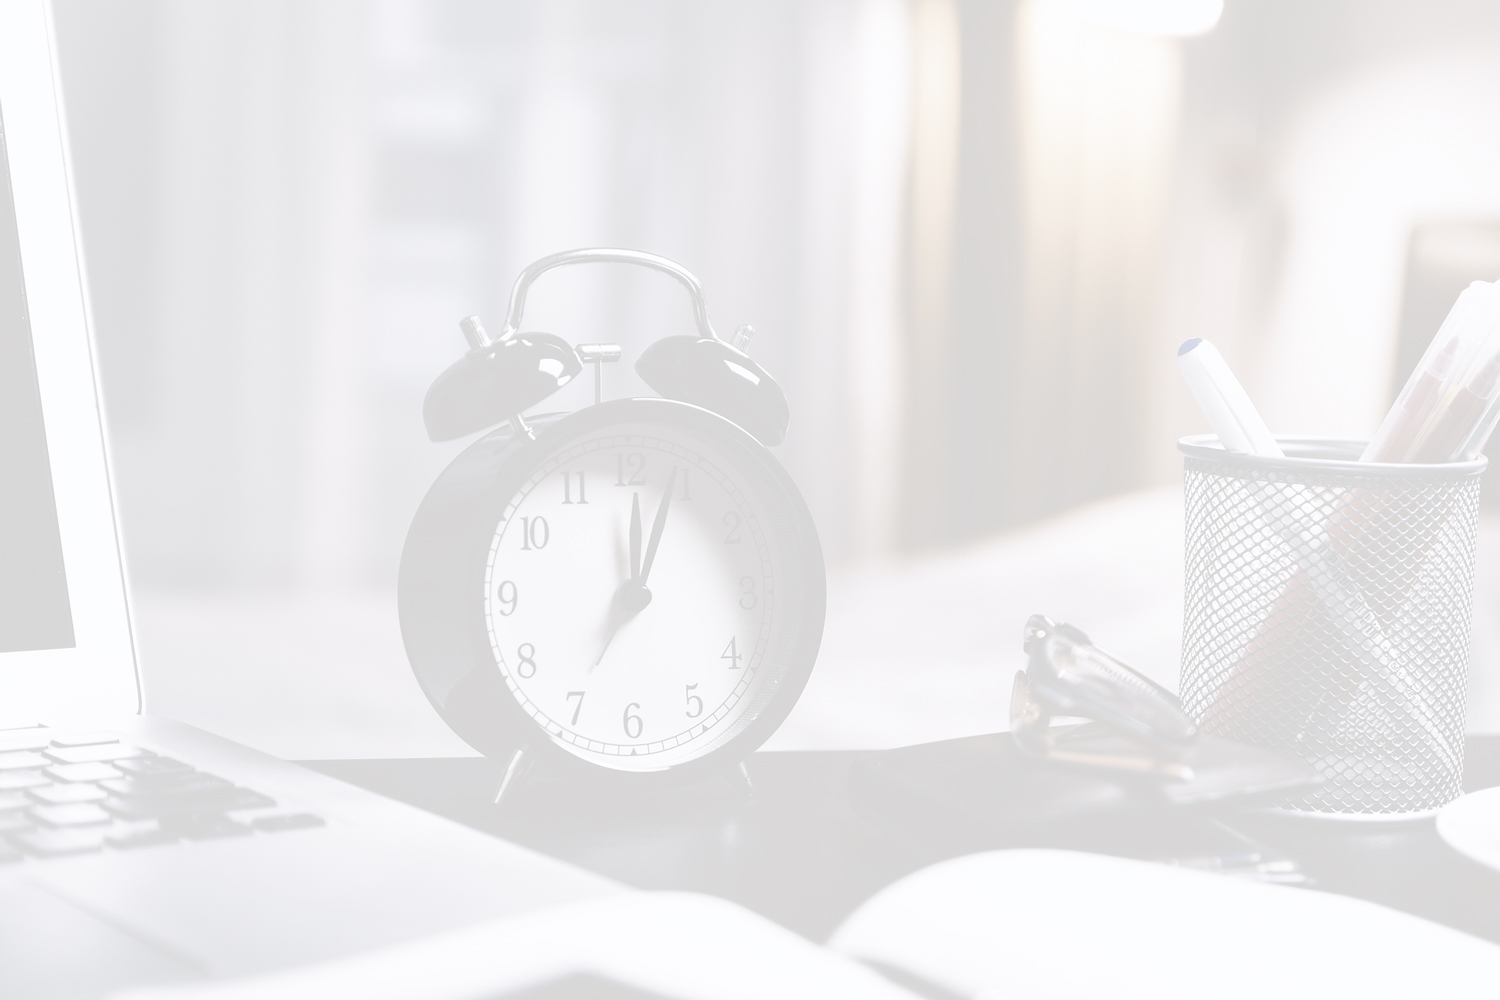 4 Time Management Tips for Small Business